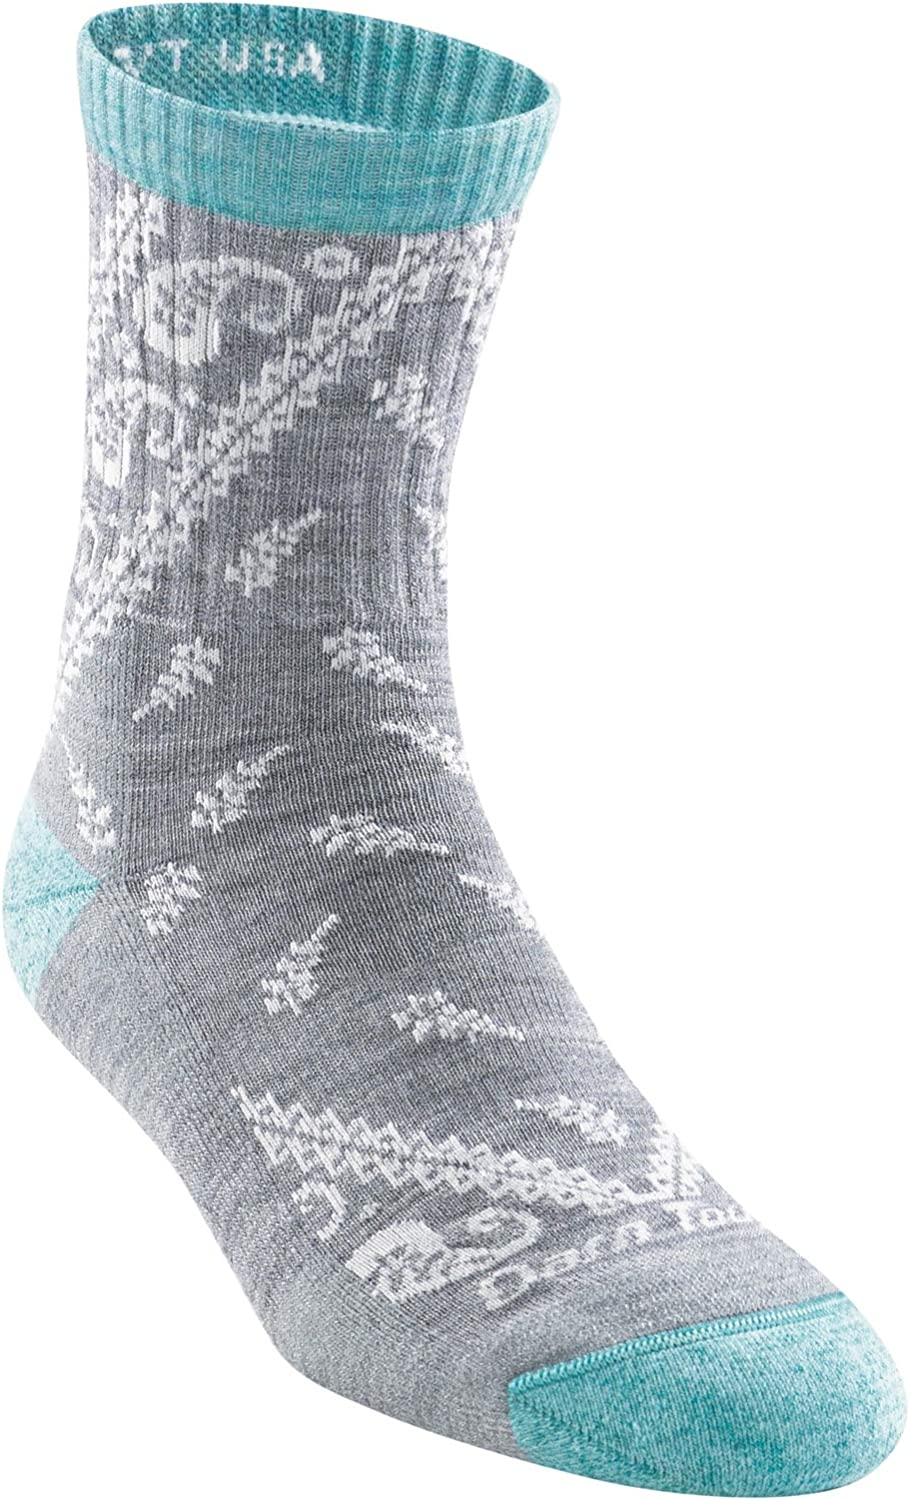 Womens Darn Tough Janis Micro Crew Midweight Sock with Cushion